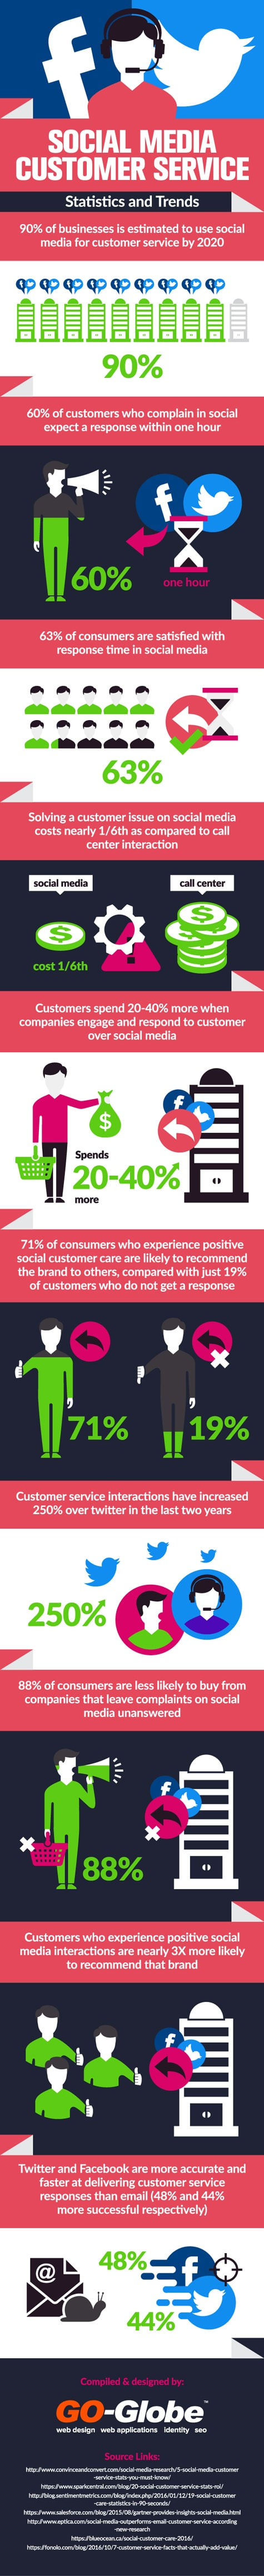 2091 475w infographic Why Its Time to Call Up Social Media For Customer Service